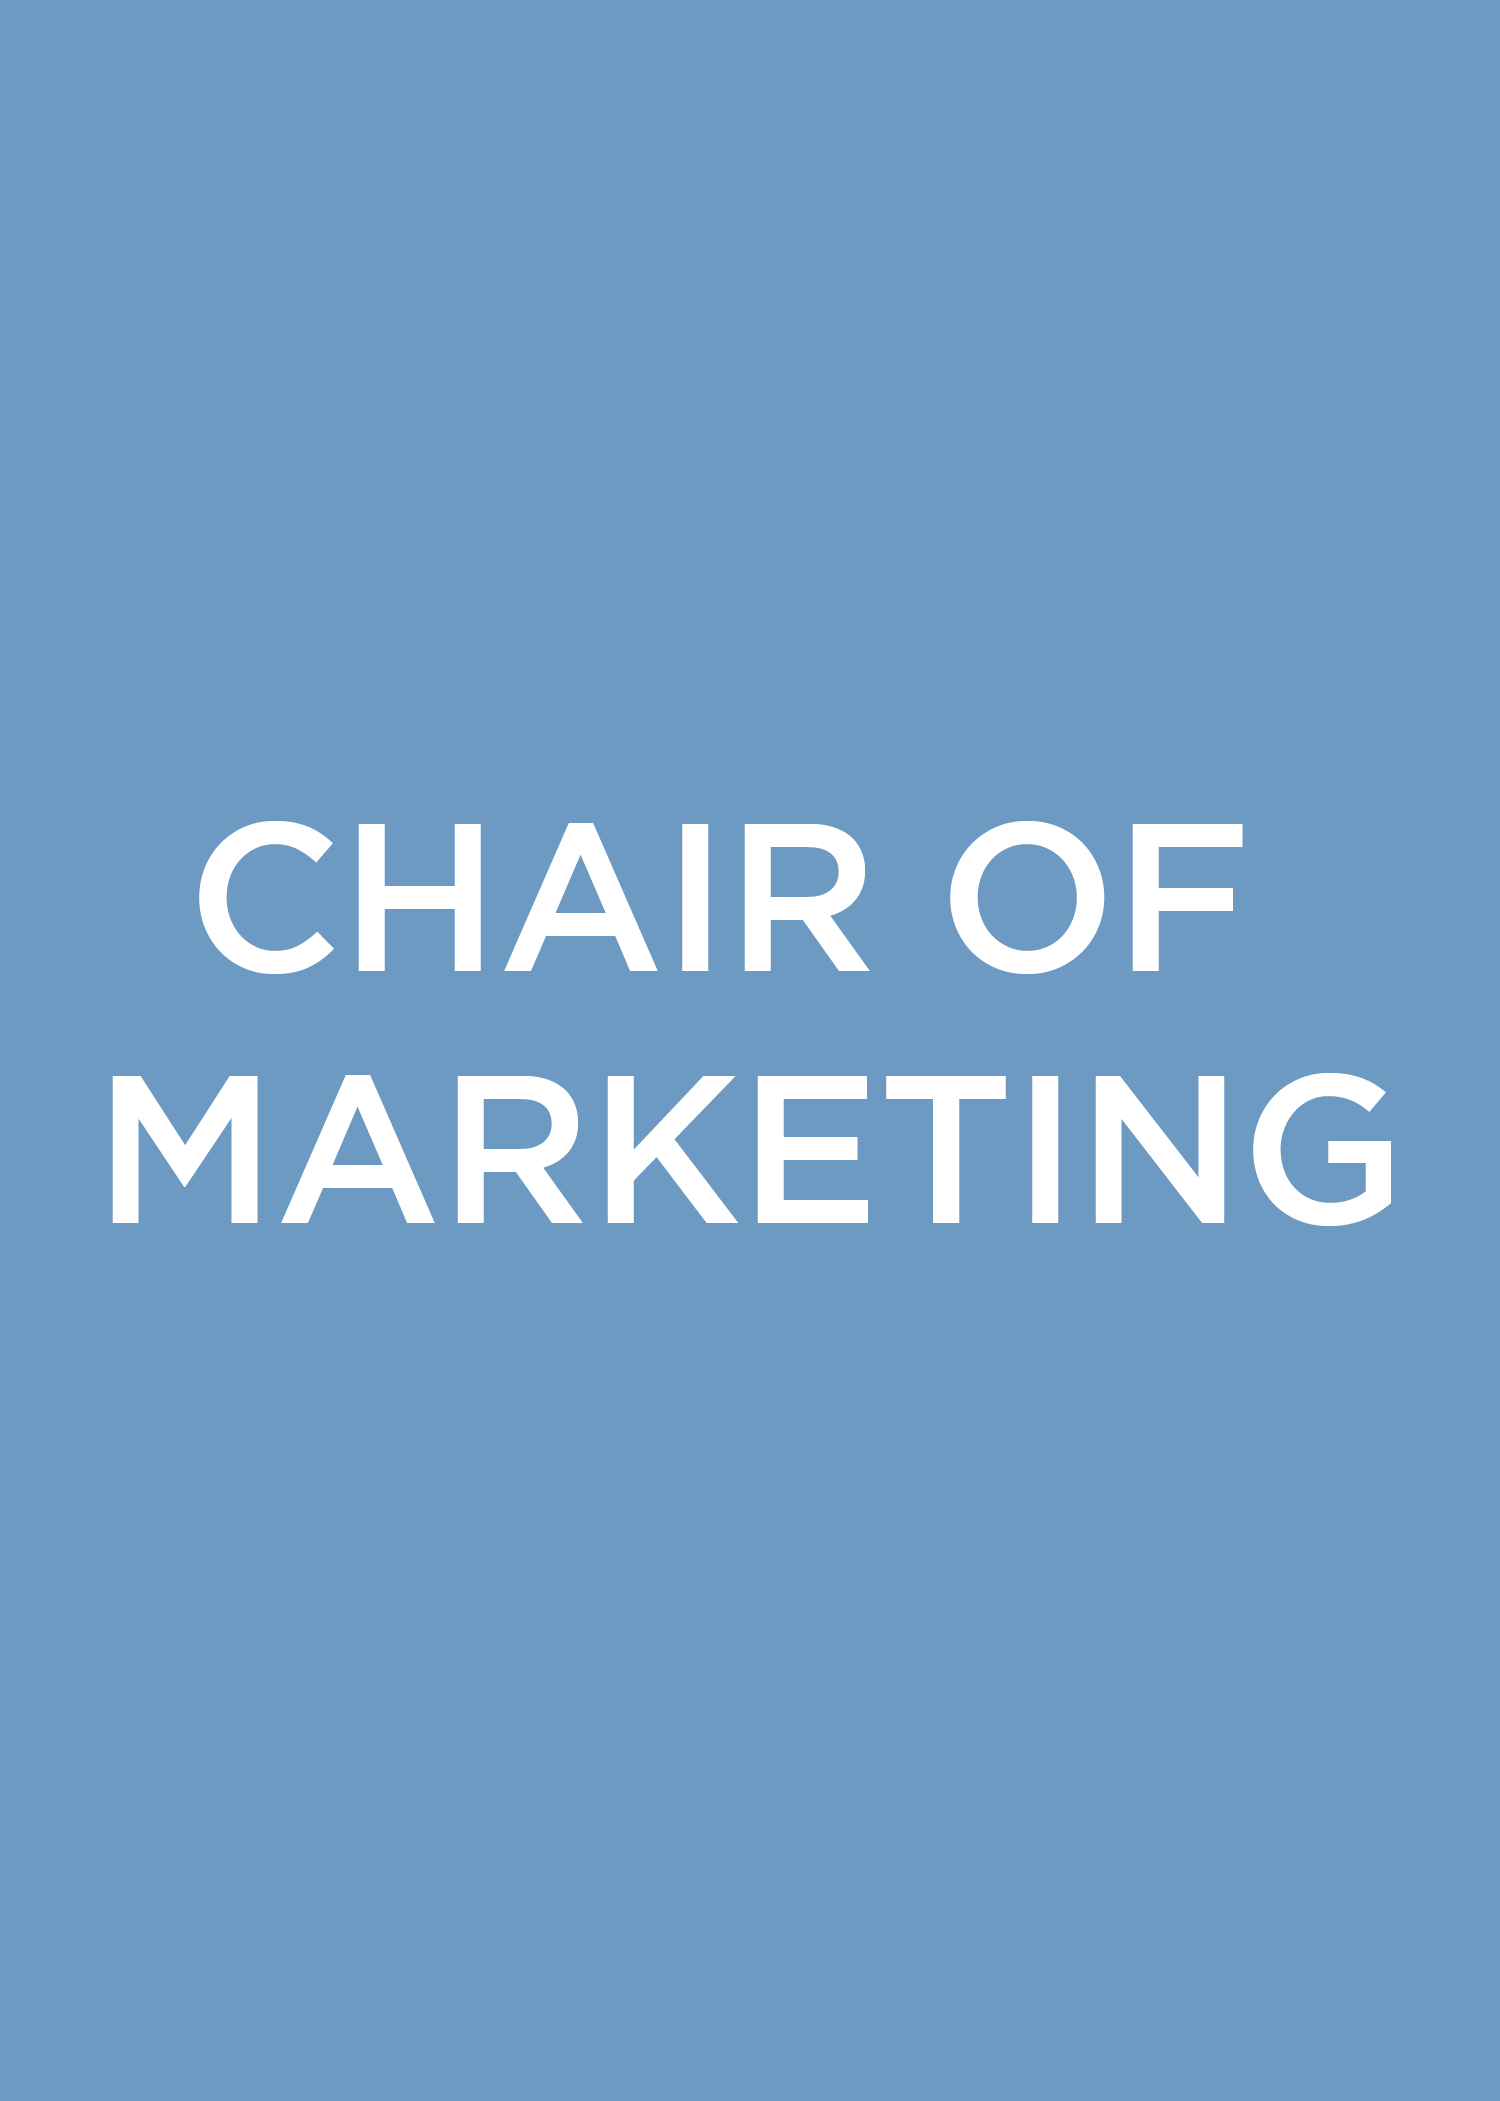 Chair of Marketing